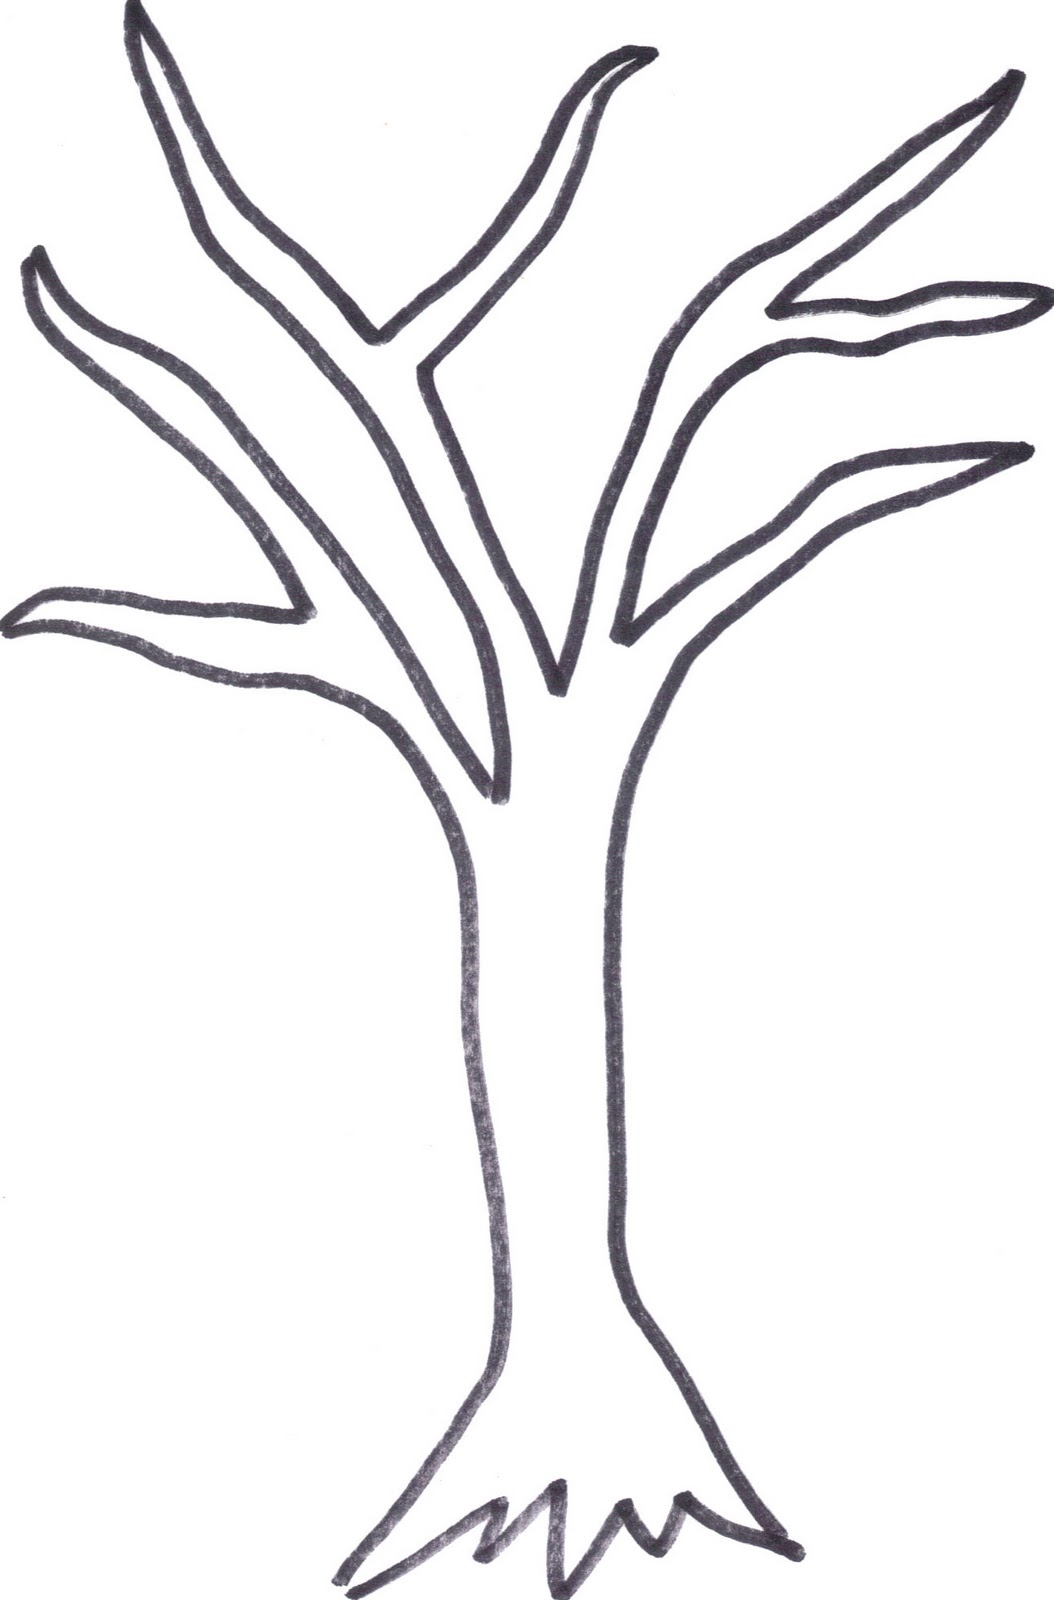 This is a graphic of Genius Stick Tree Drawing